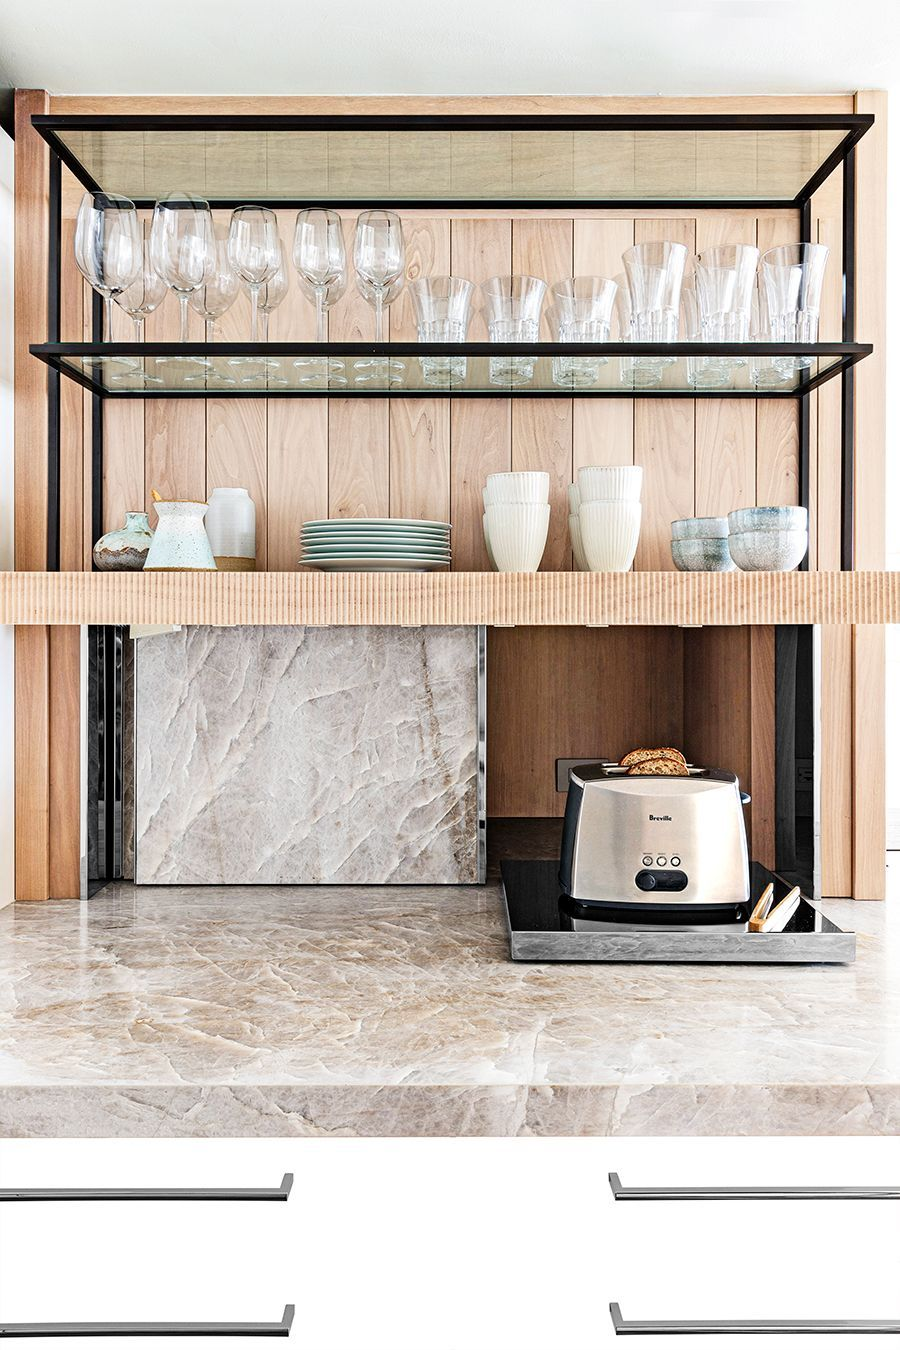 Quartzite countertop with shelves and glasses with wood background